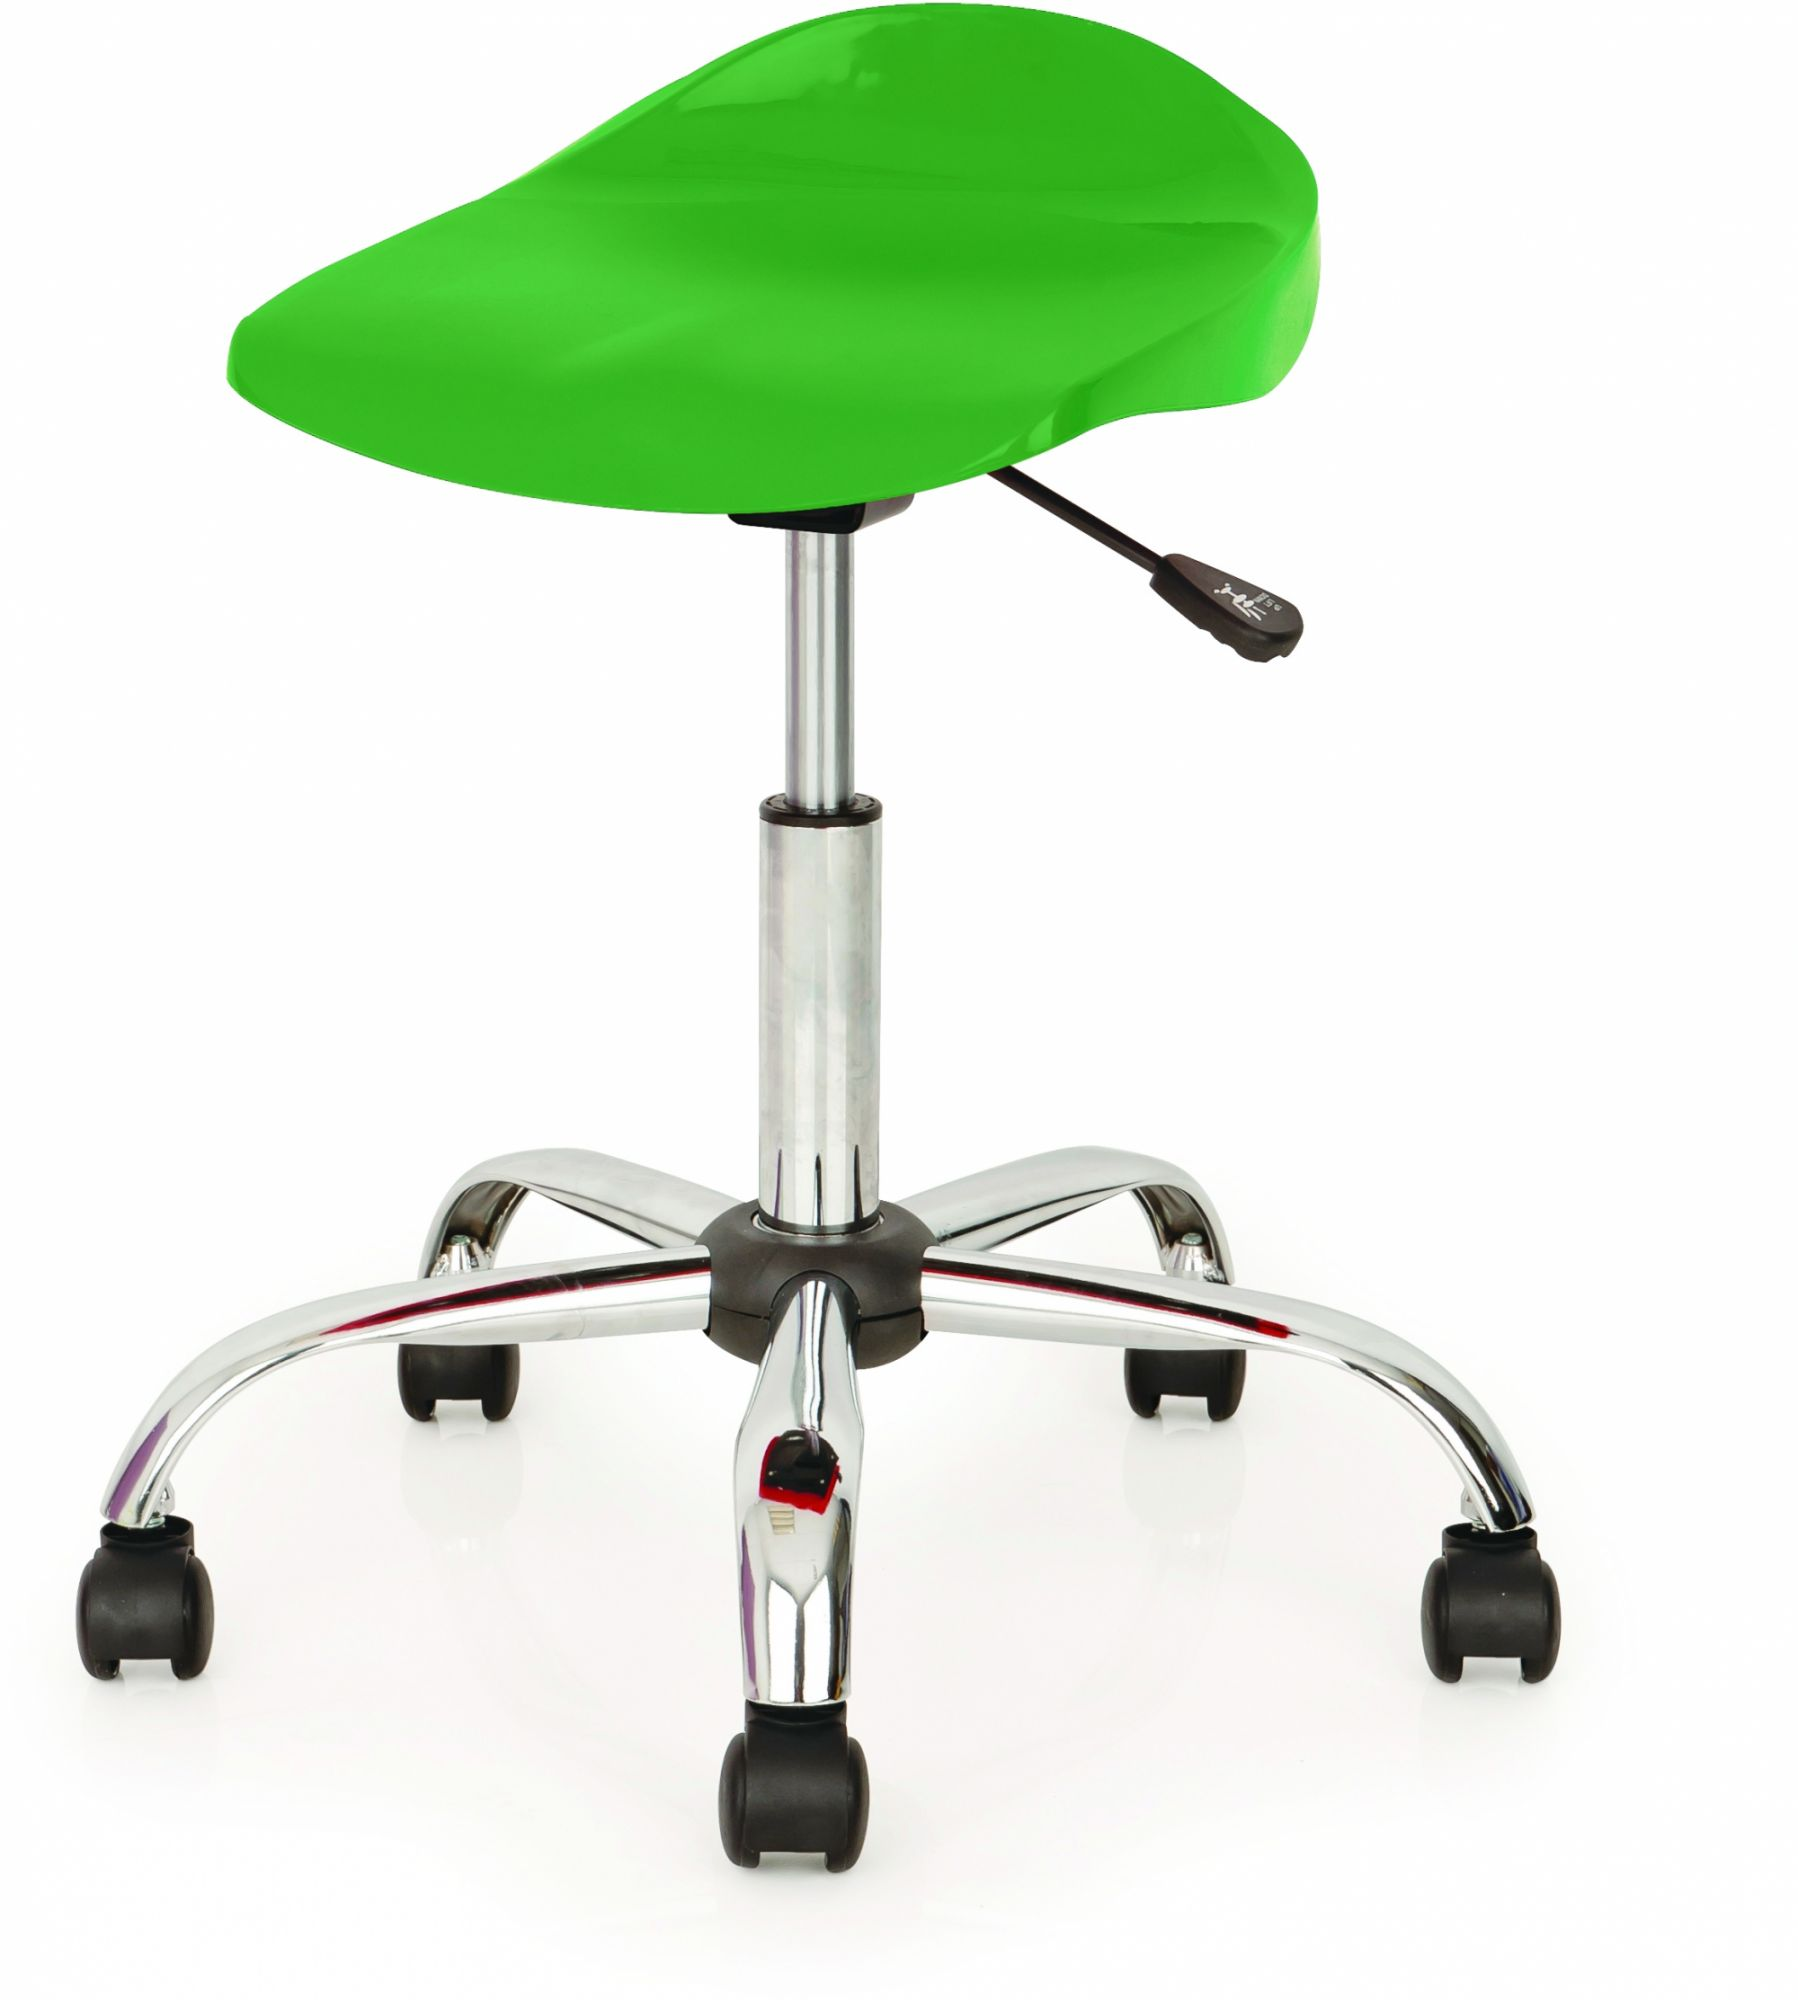 titan-T32-swivel-stool-green-2000x2000